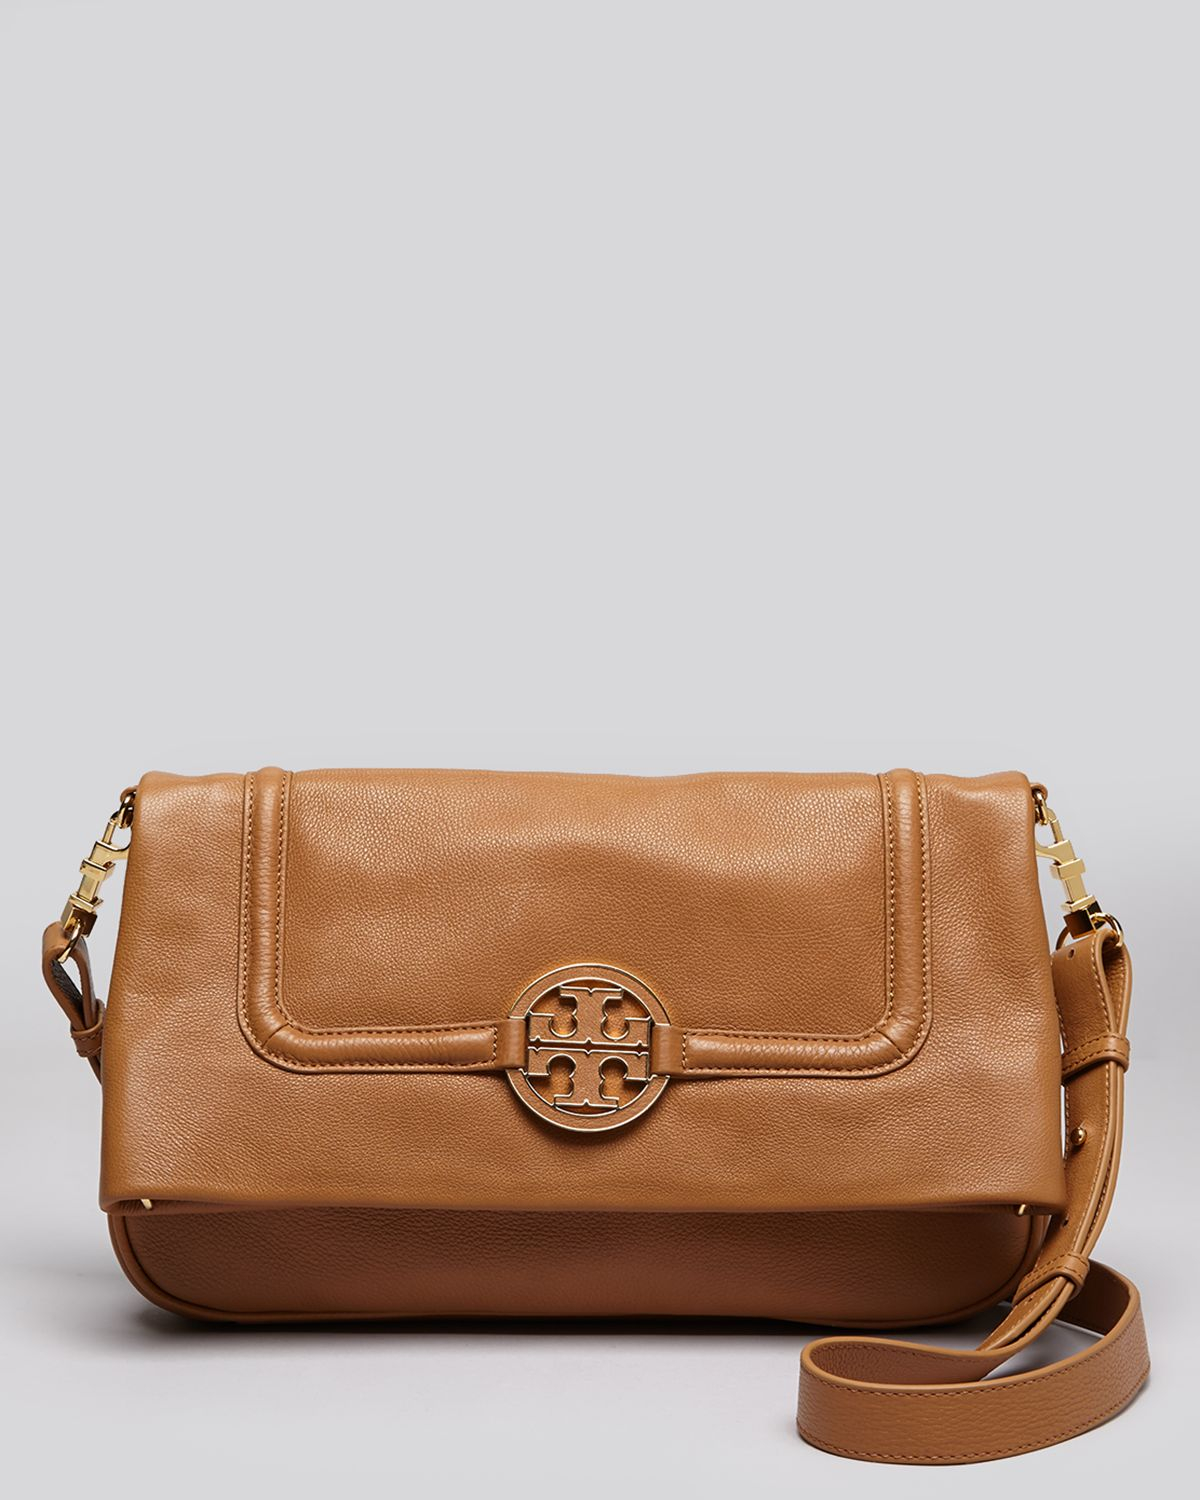 24374d579cc7 Gallery. Previously sold at  Bloomingdale s · Women s Tory Burch Amanda ...